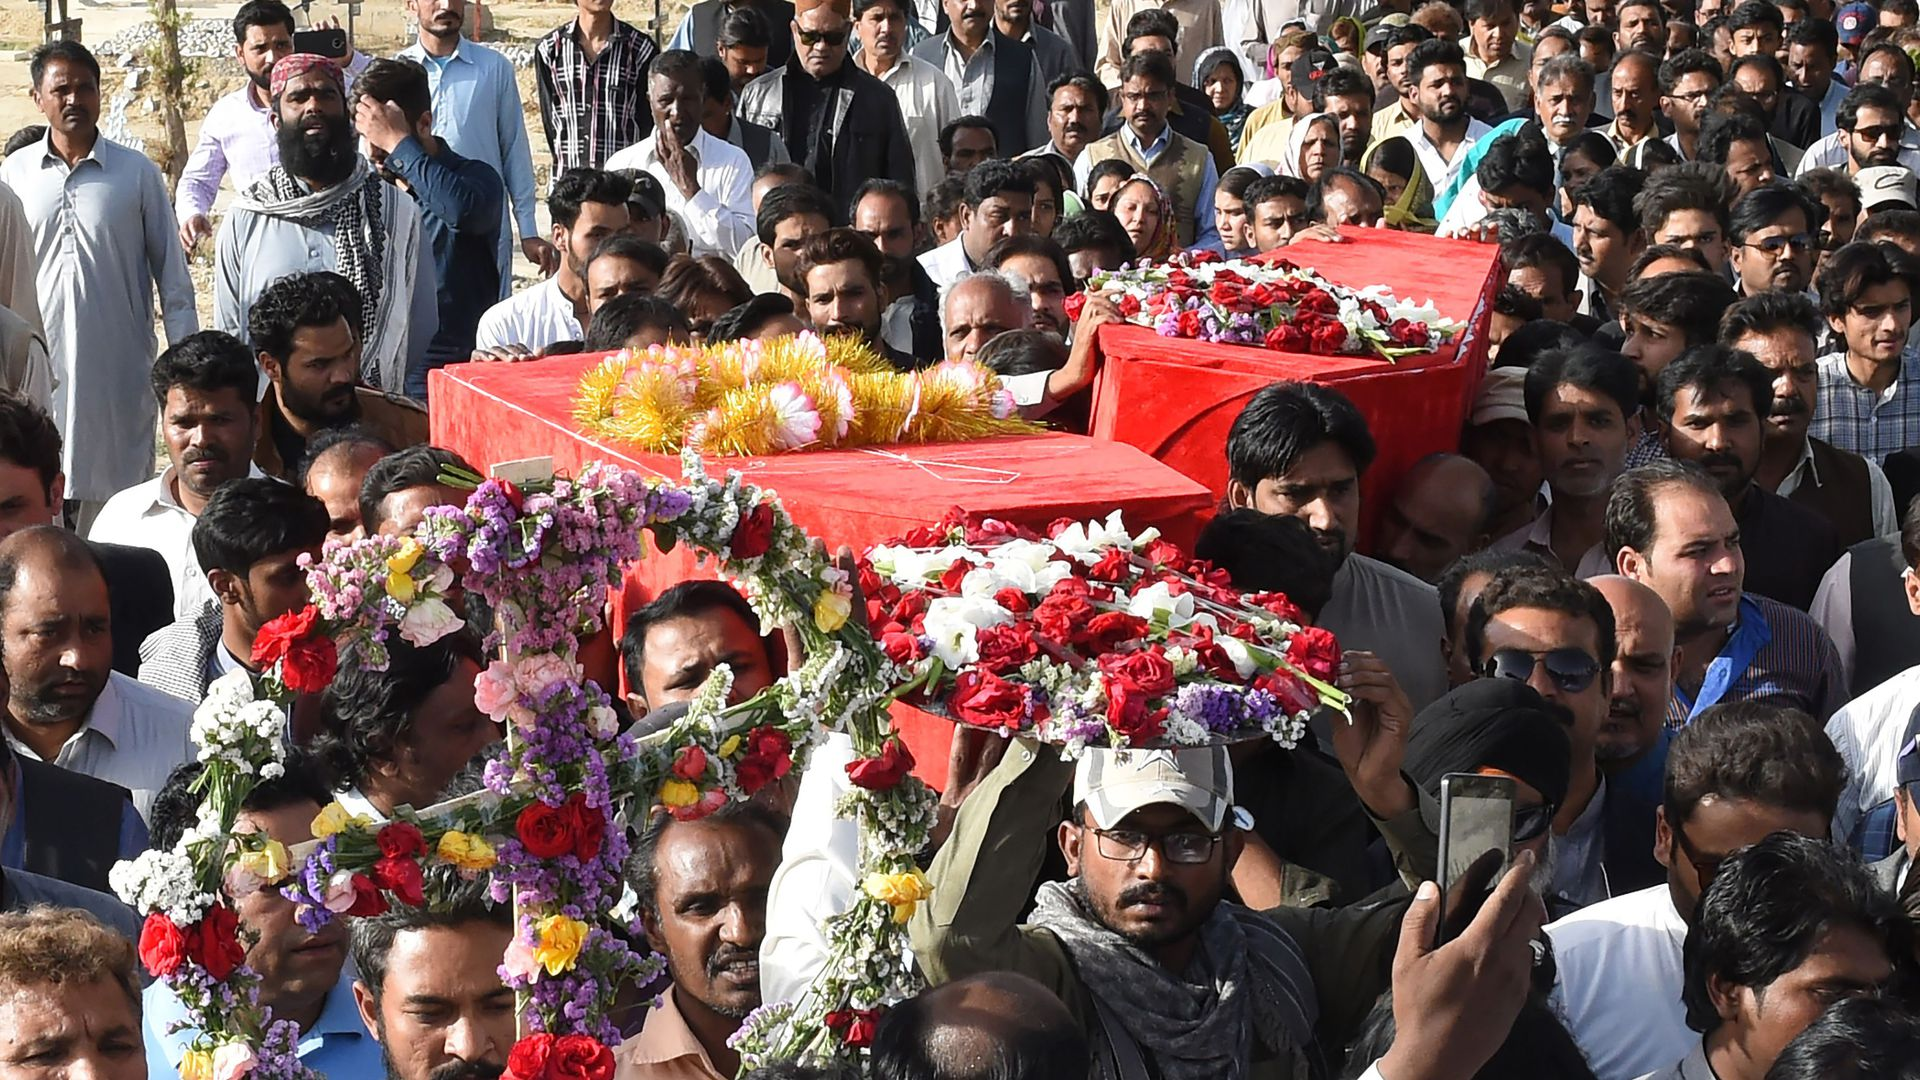 Southwest Pakistani Christians carrying a casket